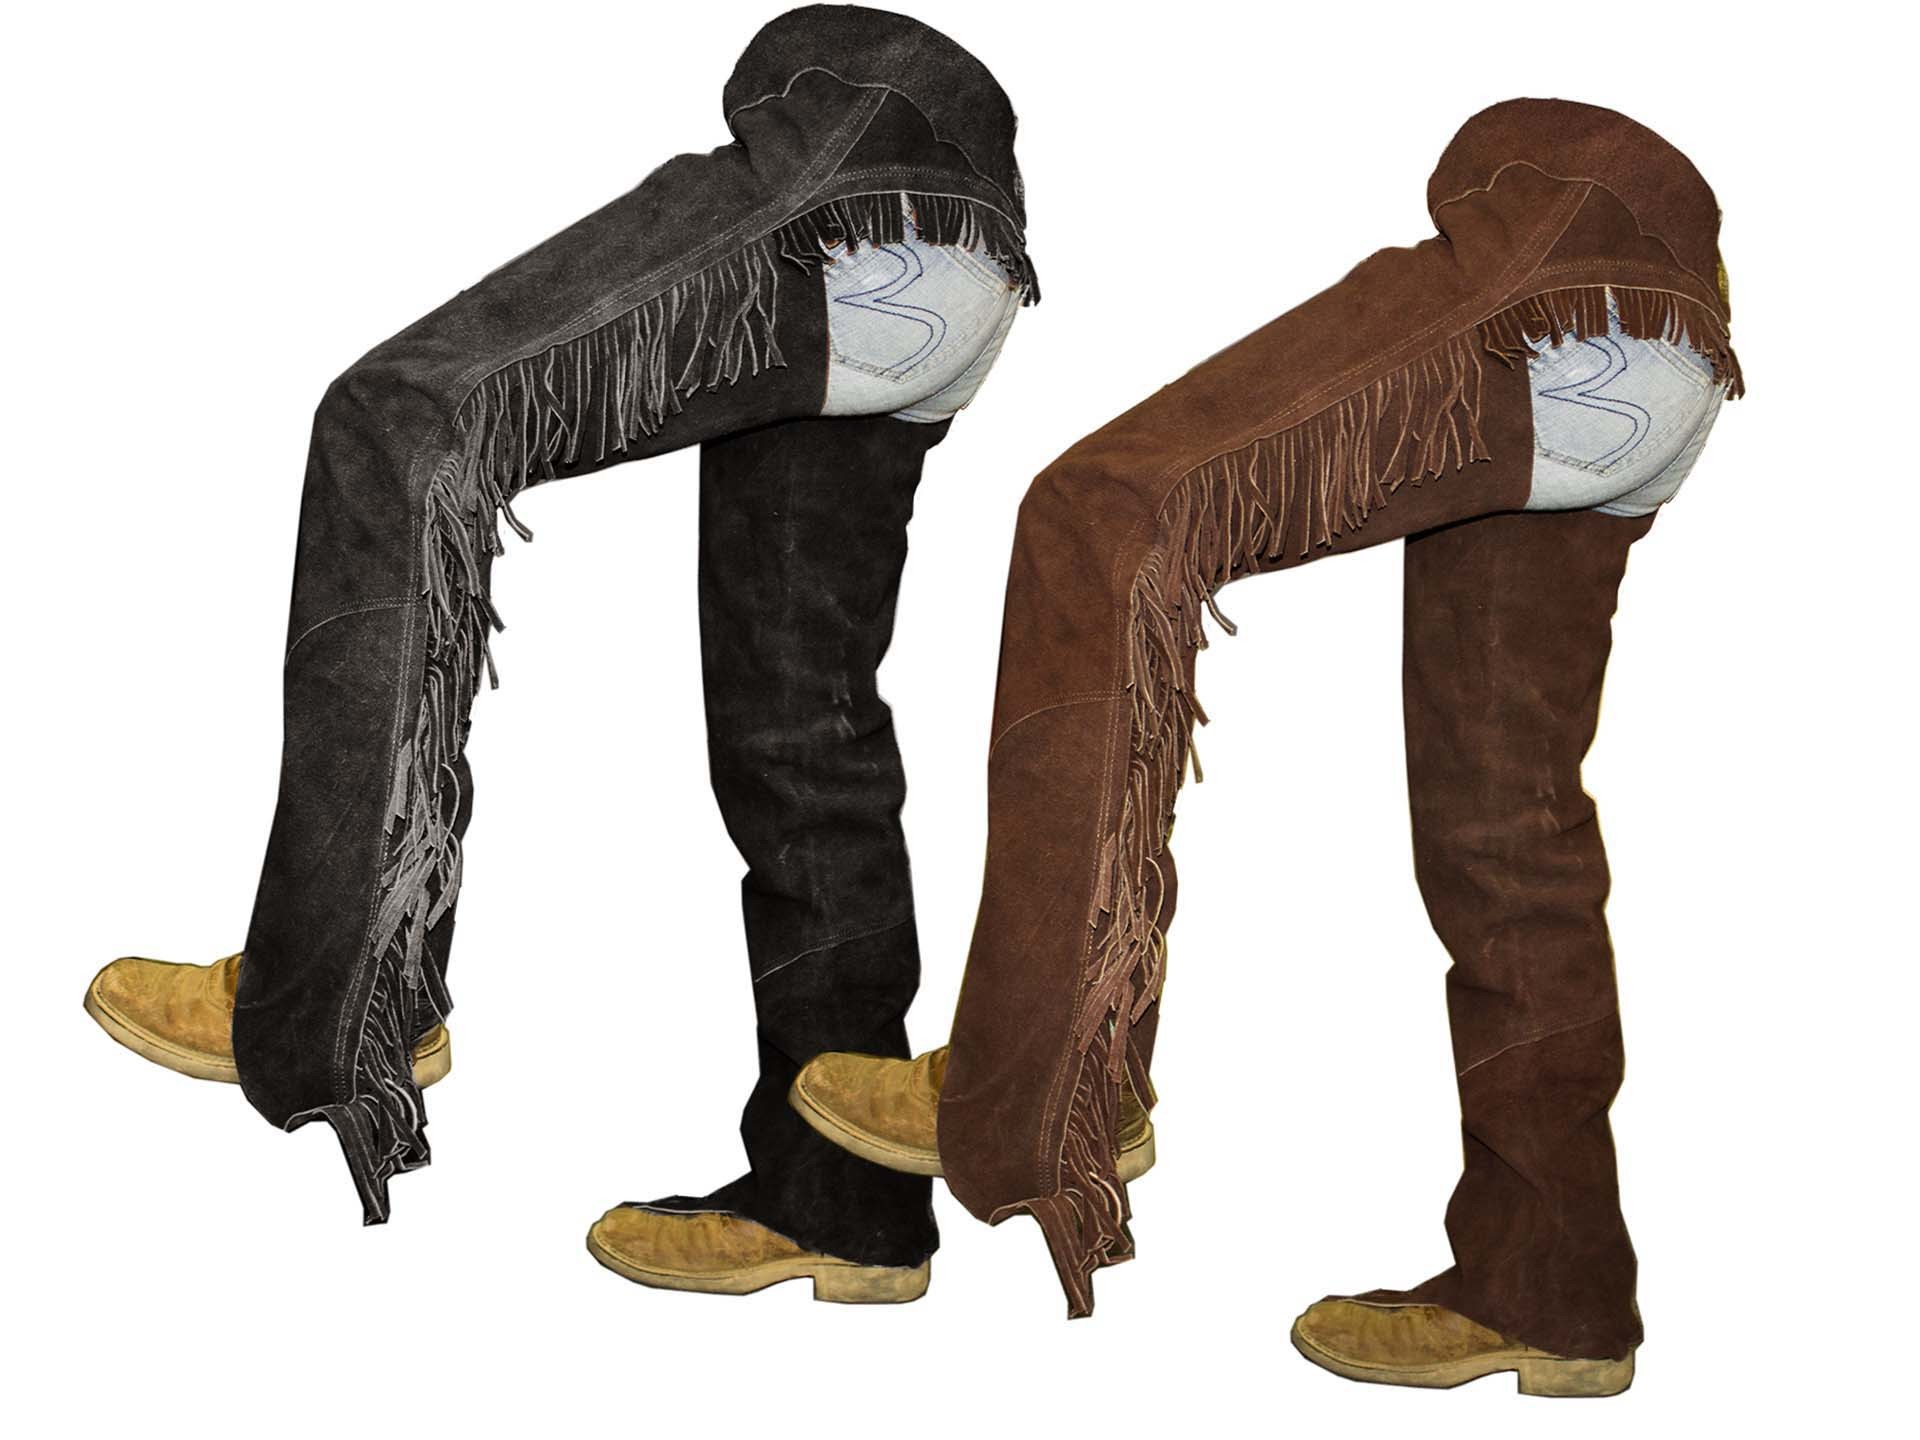 1920x1440 Tahoe Suede Leather Western Full Chaps with Fringes | www.tackwholesale.com